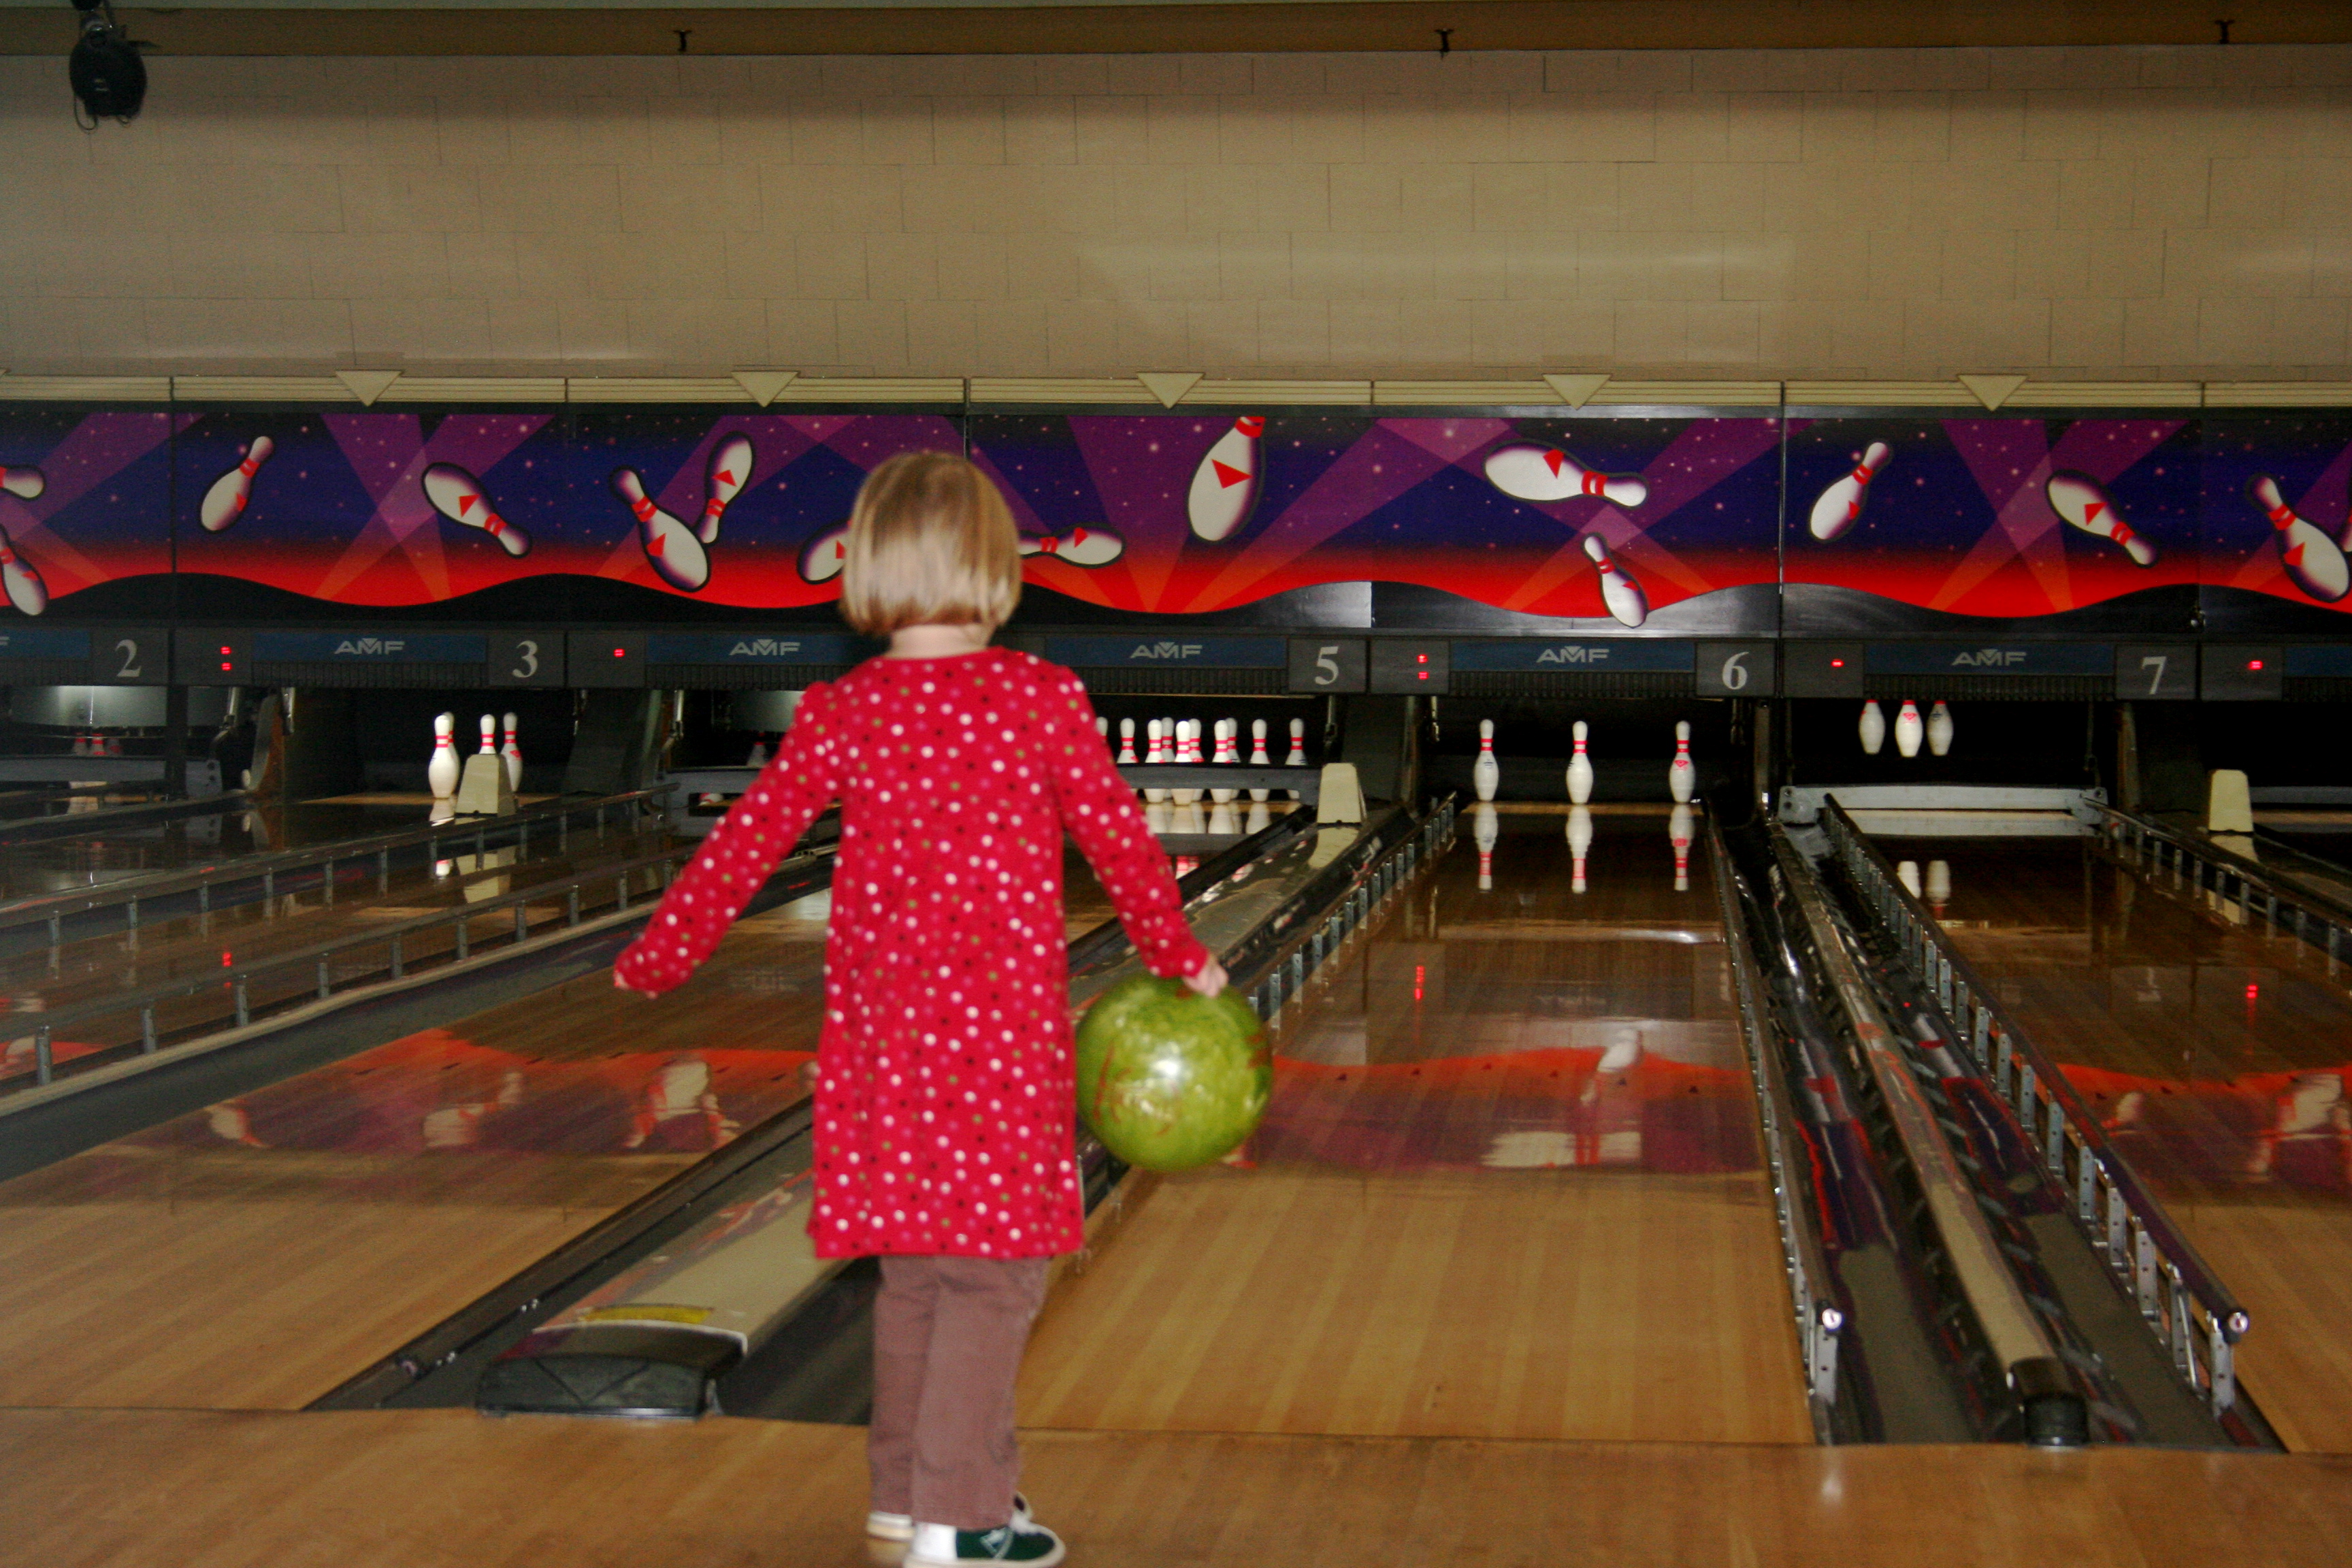 This ball was pretty much bowling her. . .